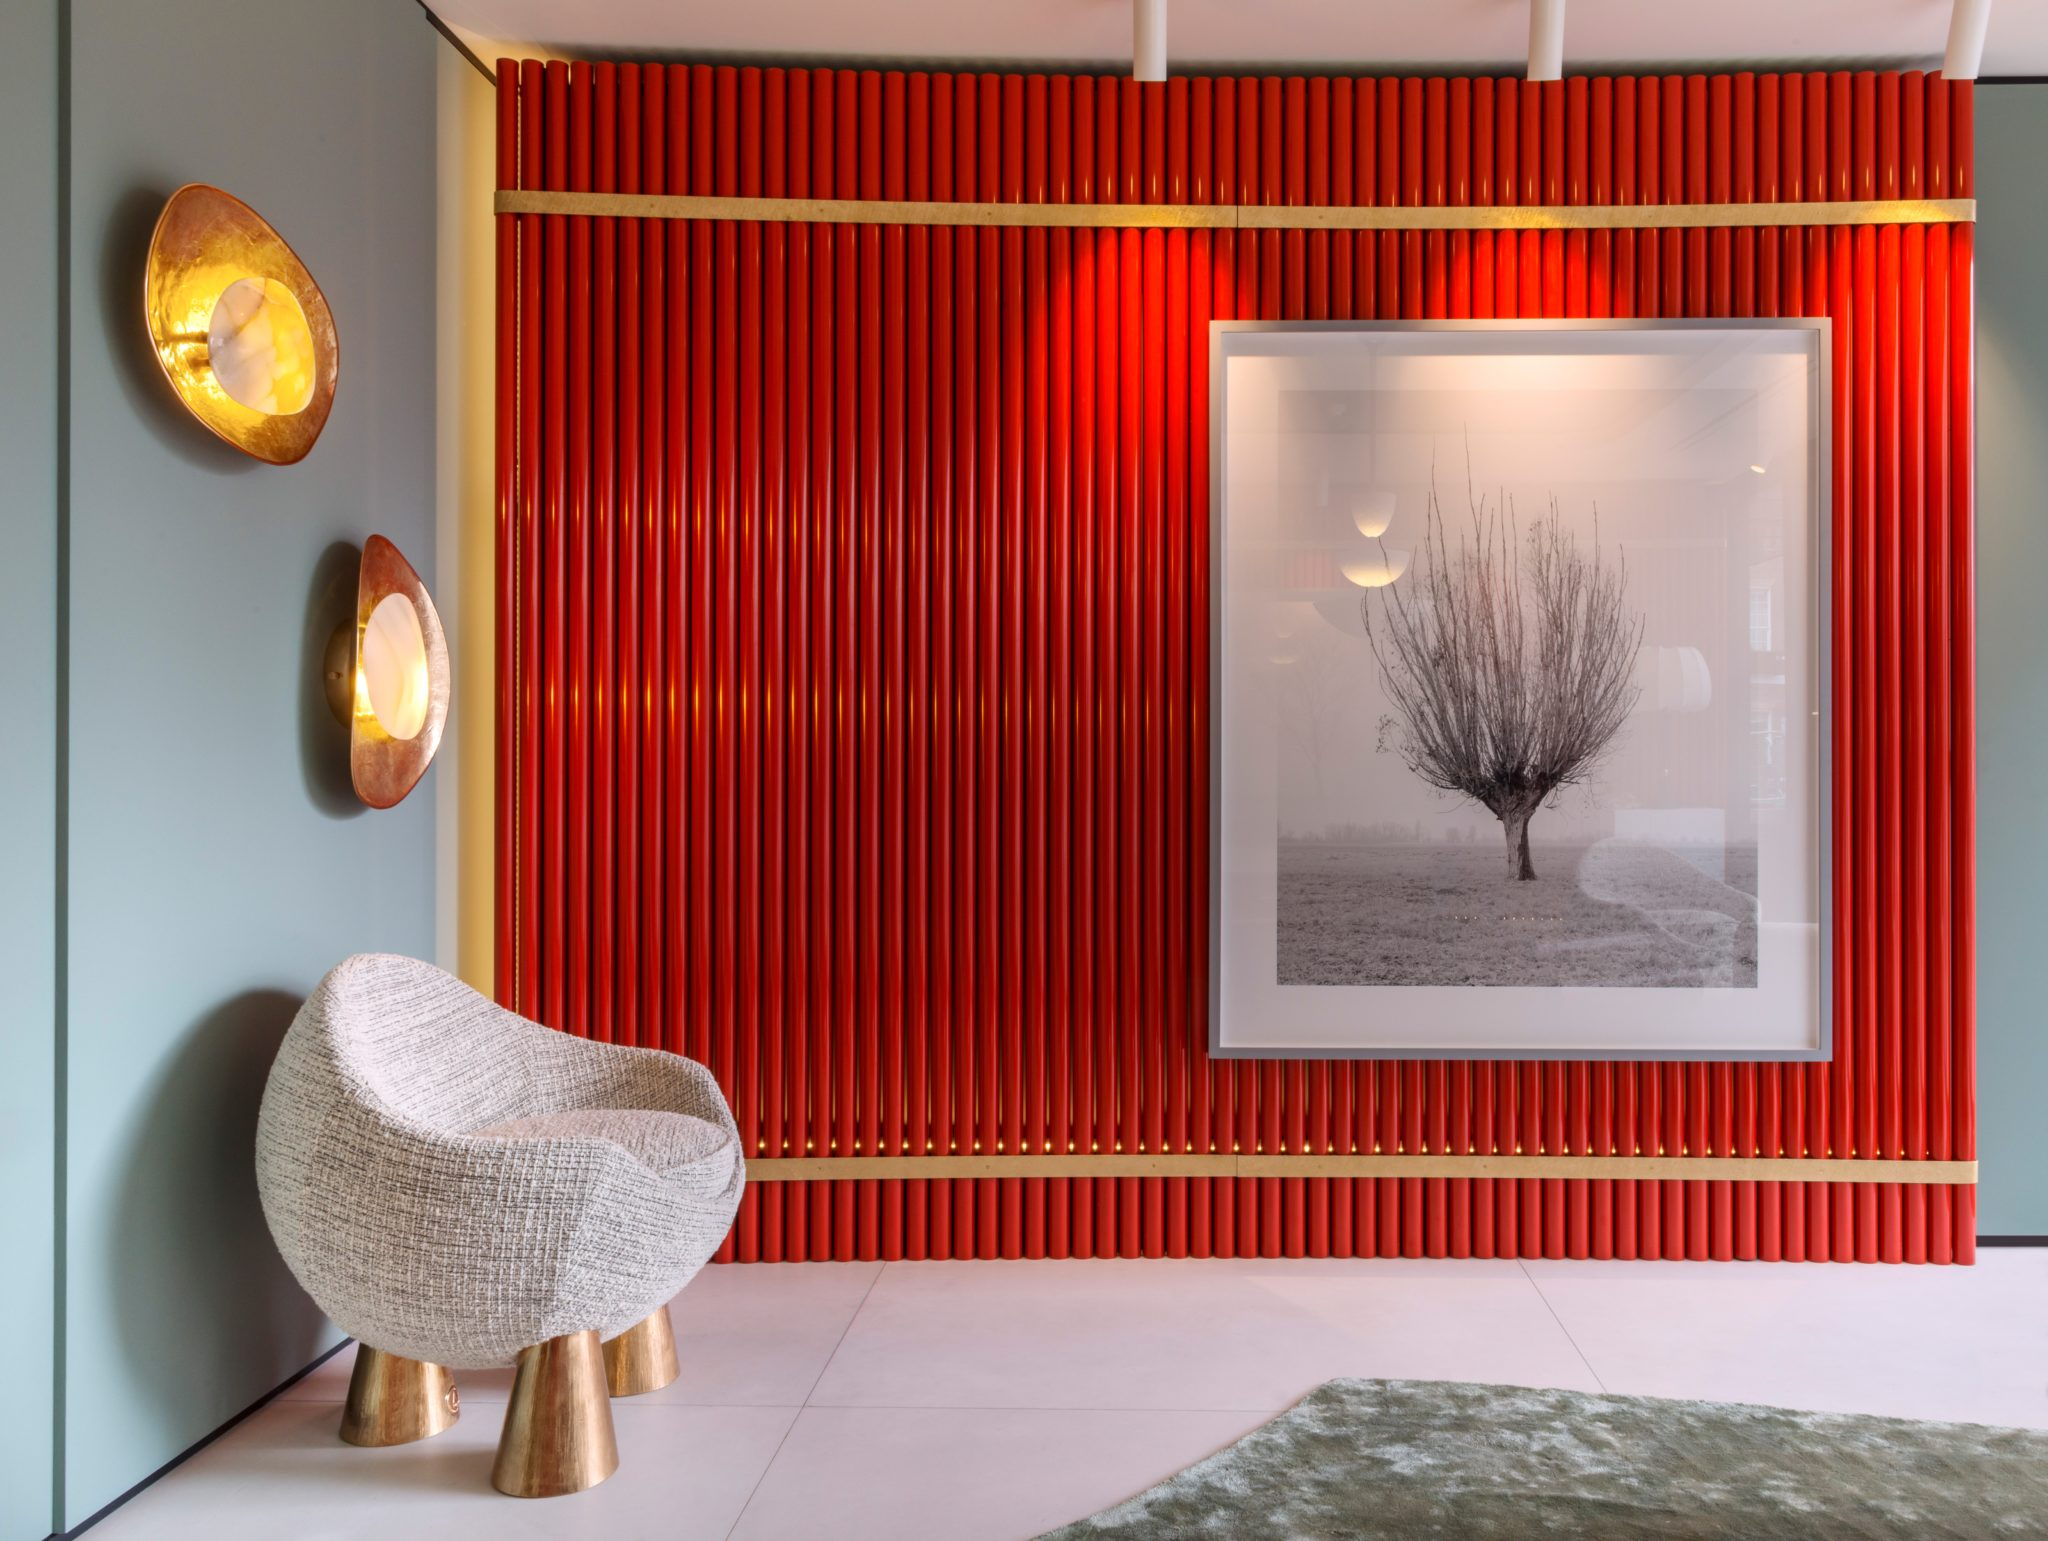 For an apartment in London, Salvagni was inspired by Japan;a lacquered red room divider is contrasted with hisOyster wall sconces ofpolished bronze andhand-carved onyx and Gae armchair, whichreferences Isamu Noguchi and Isamu Kenmochi's basket chair.